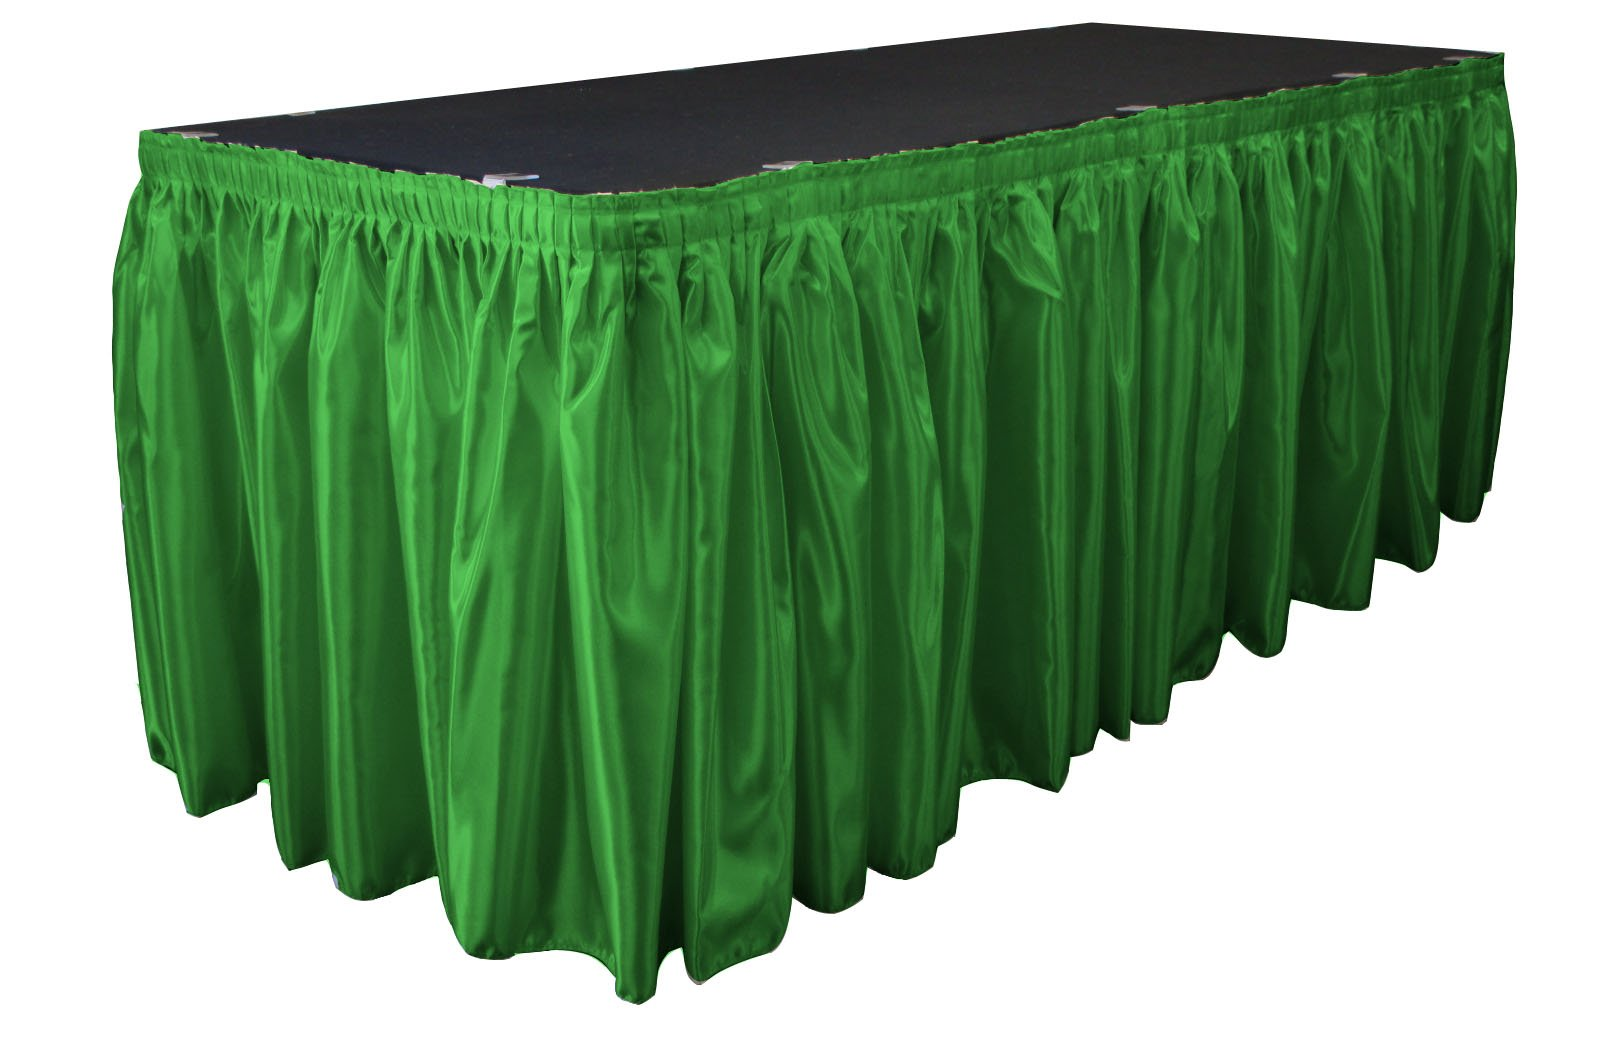 LA Linen Bridal Satin Pleated Table Skirt with 15 Large Clips, 21-Feet by 29-Inch, Green Kelly